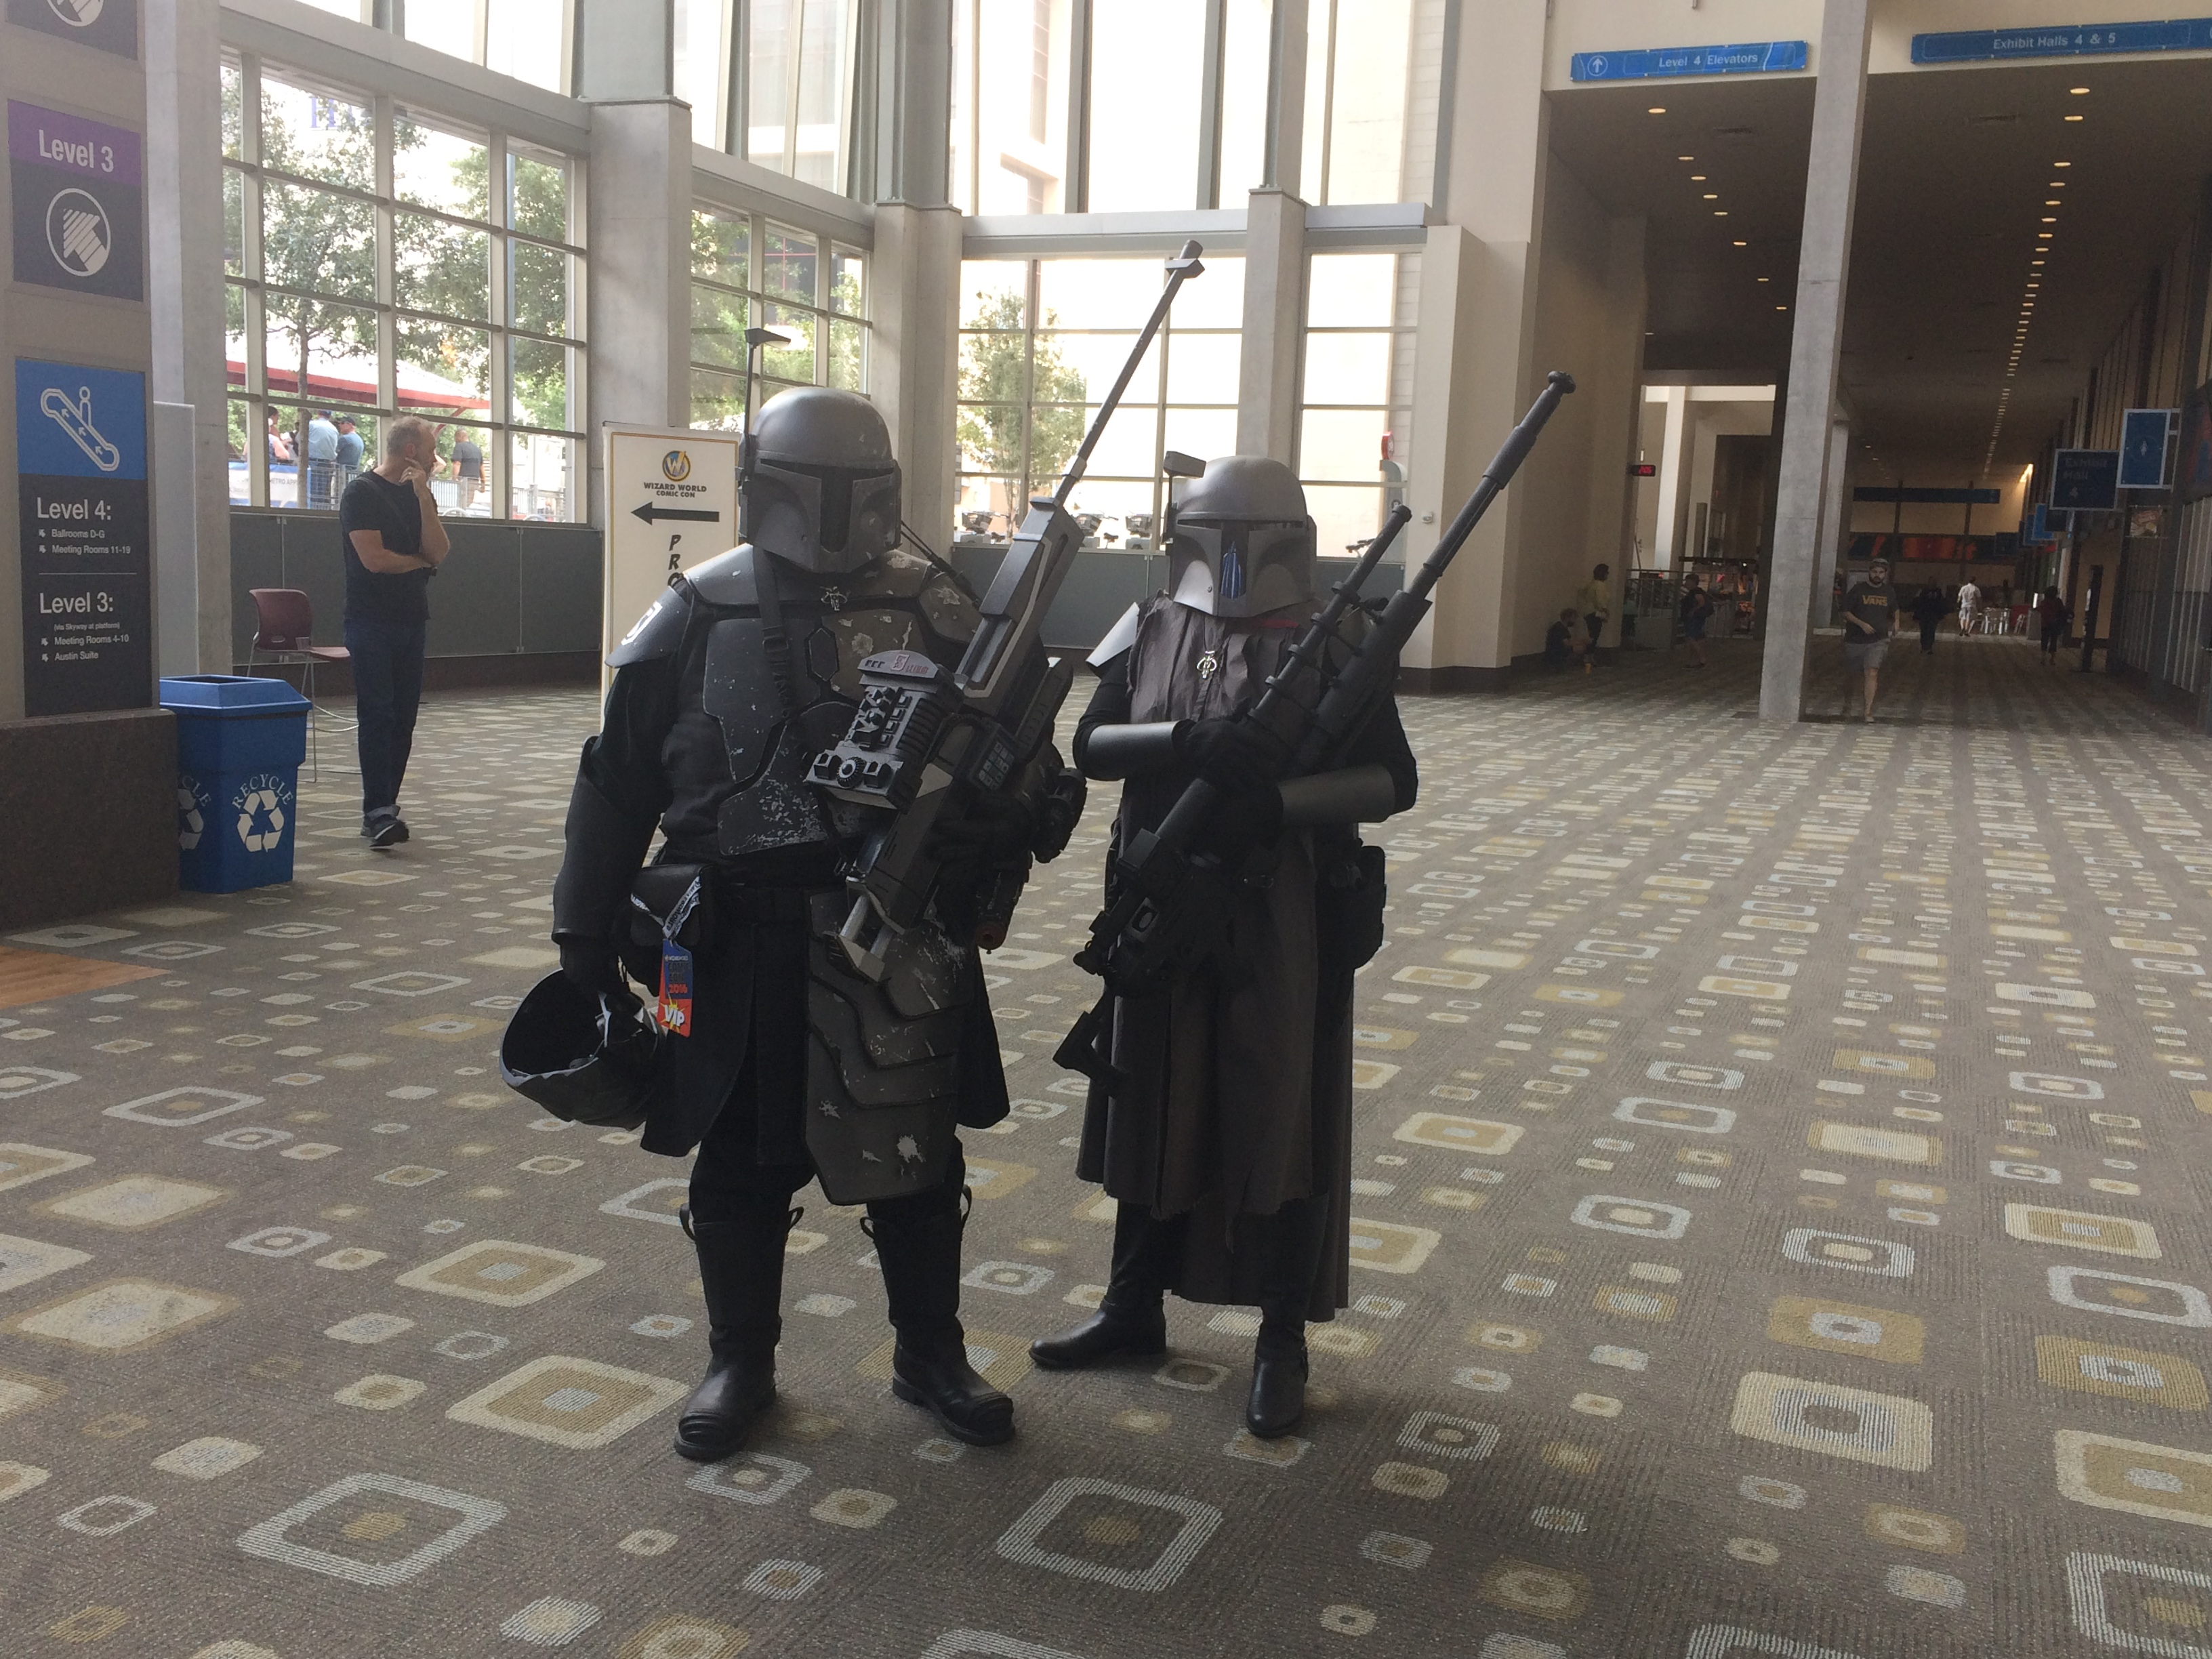 Comic Con <a href='http://natejones.aus.exprealty.com/index.php?types[]=1&types[]=2&areas[]=city:Austin&beds=0&baths=0&min=0&max=100000000&map=0&quick=1&submit=Search' title='Search Properties in Austin'>Austin</a> 2016